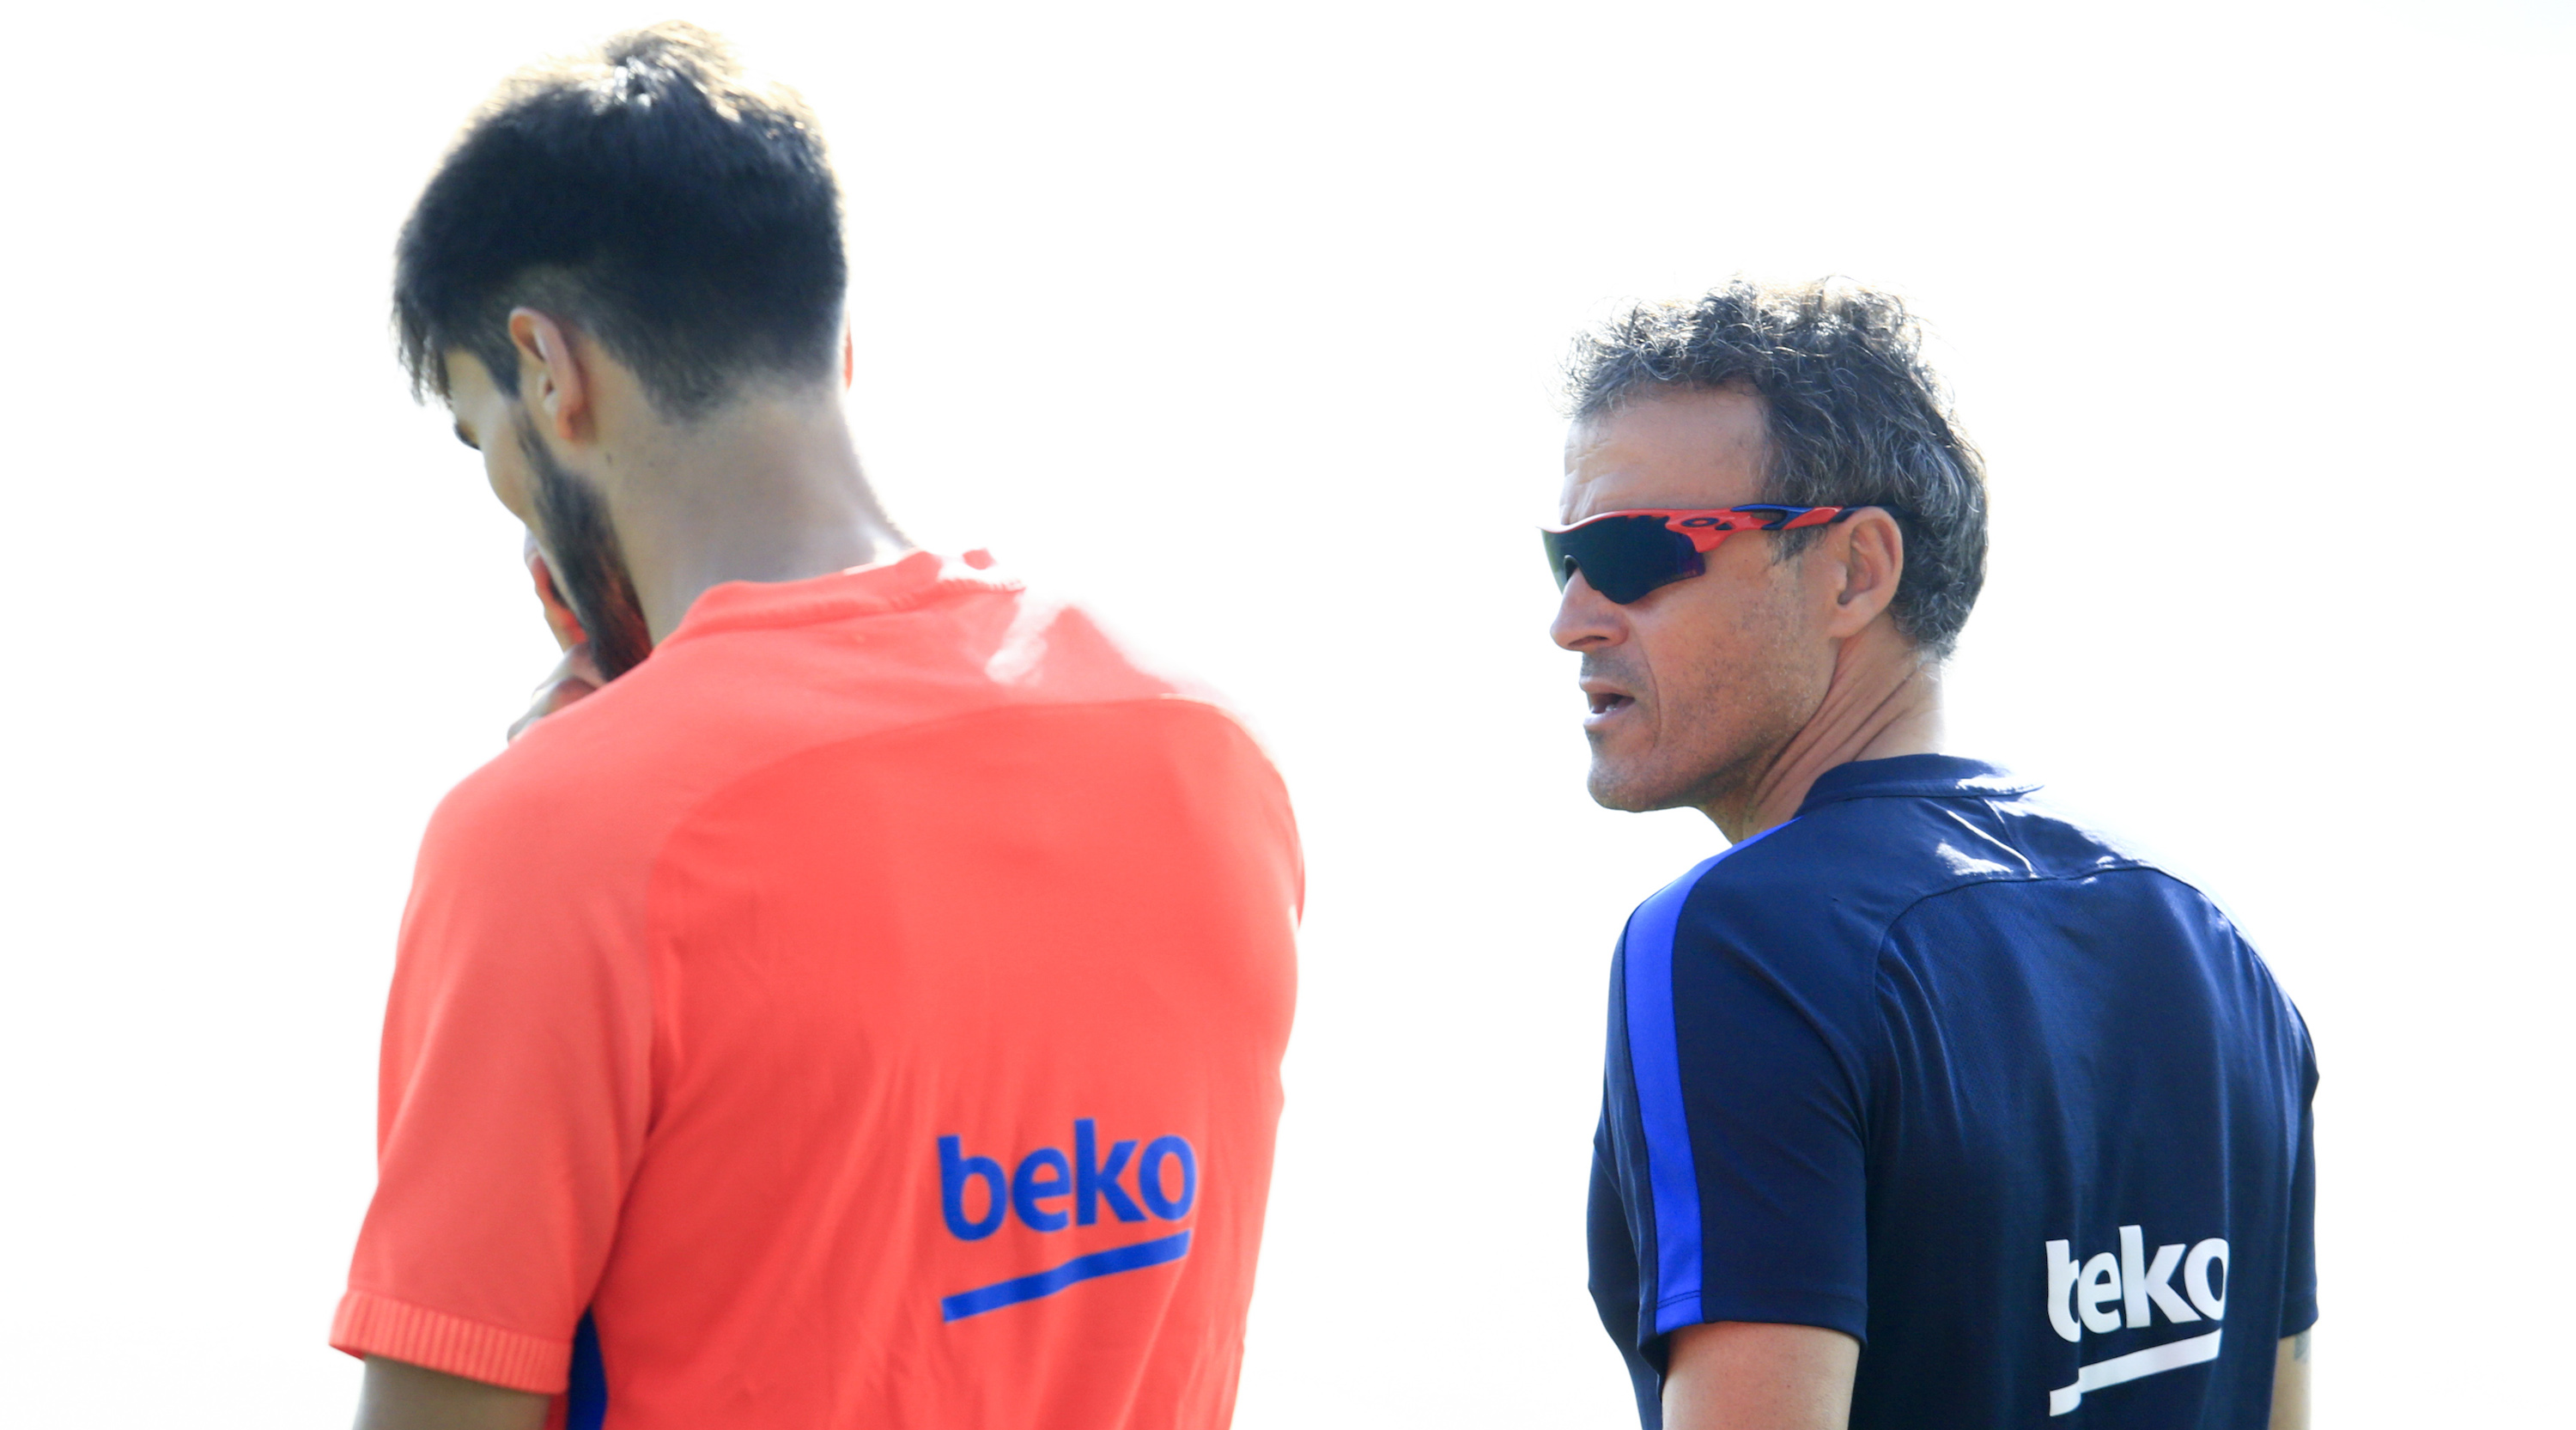 Barcelona's coach Luis Enrique (R) talks to Barcelona's Portuguese midfielder Andre Gomes as they arrive to a training session at the Sports Center FC Barcelona Joan Gamper in Sant Joan Despi, near Barcelona on August 19, 2016 / AFP / PAU BARRENA (Photo credit should read PAU BARRENA/AFP/Getty Images)